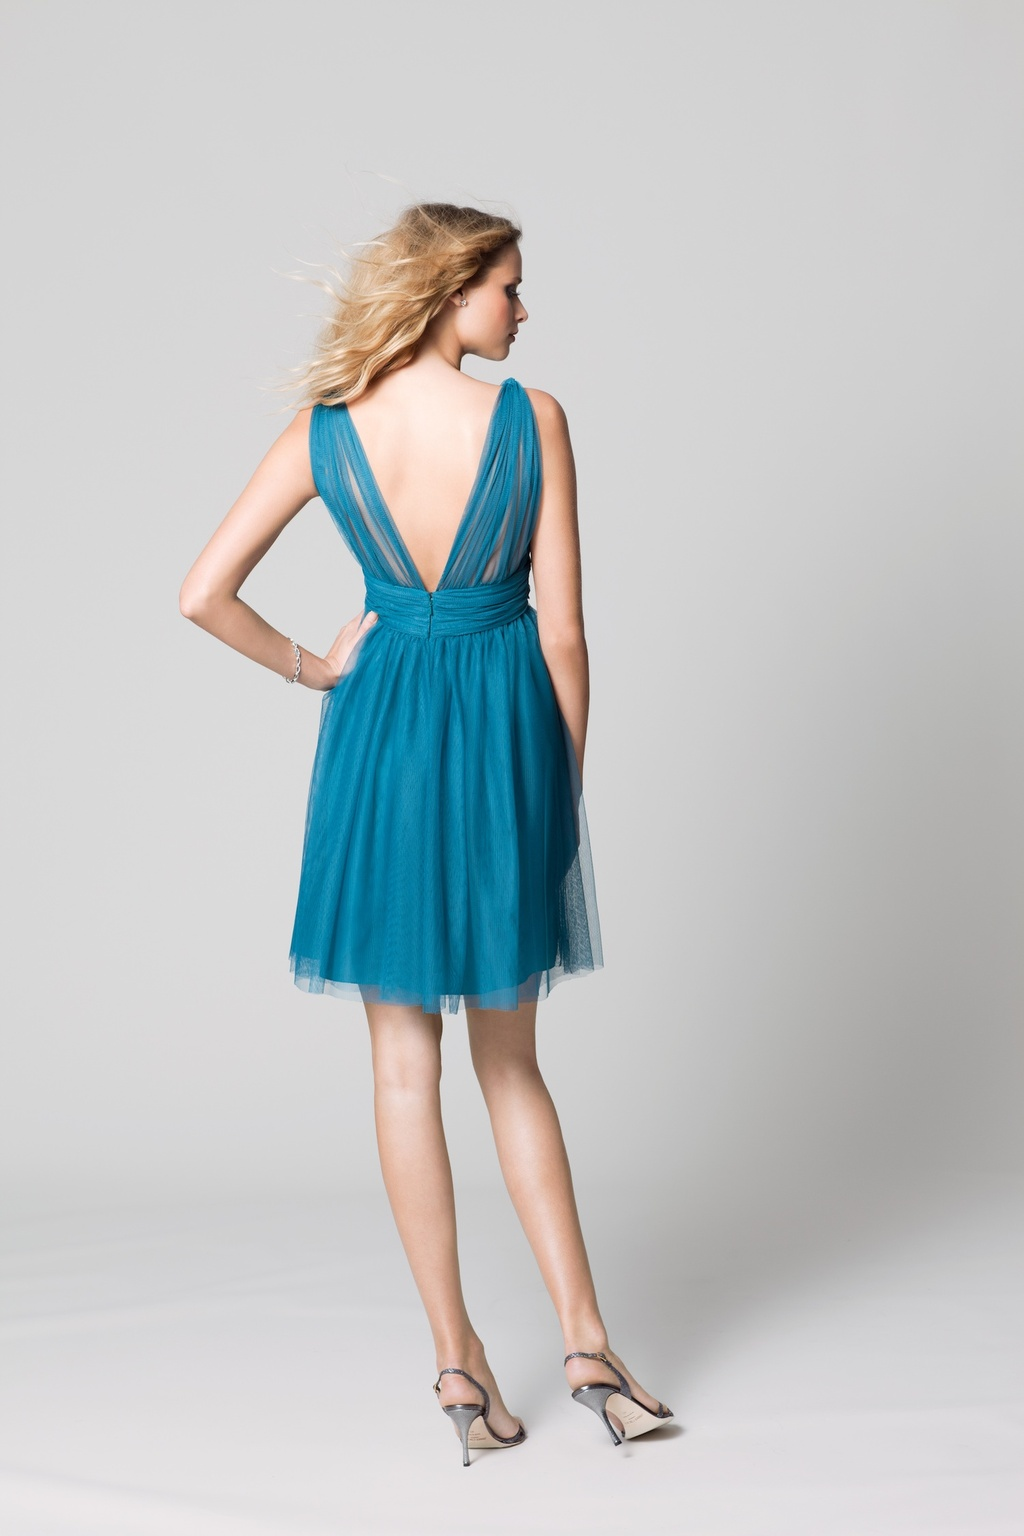 Affordable-bridesmaids-dresses-fall-2012-wtoo-by-watters-bridal-party-teal-illusion-back.original.full